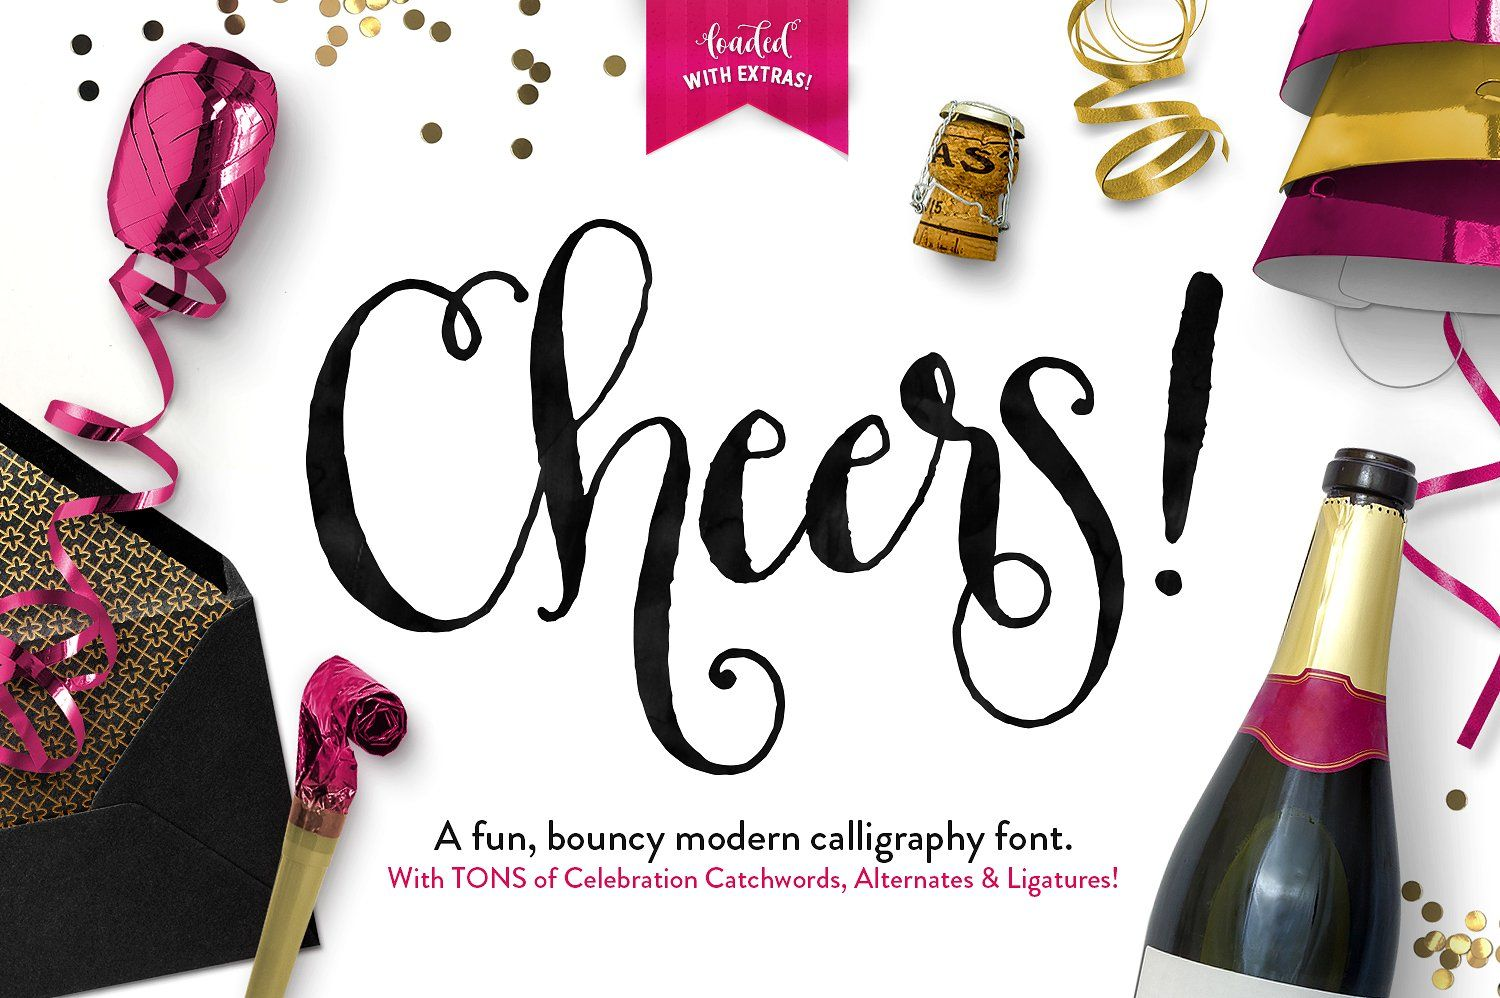 Download Cheers Font & Graphics Pack | Modern calligraphy fonts ...